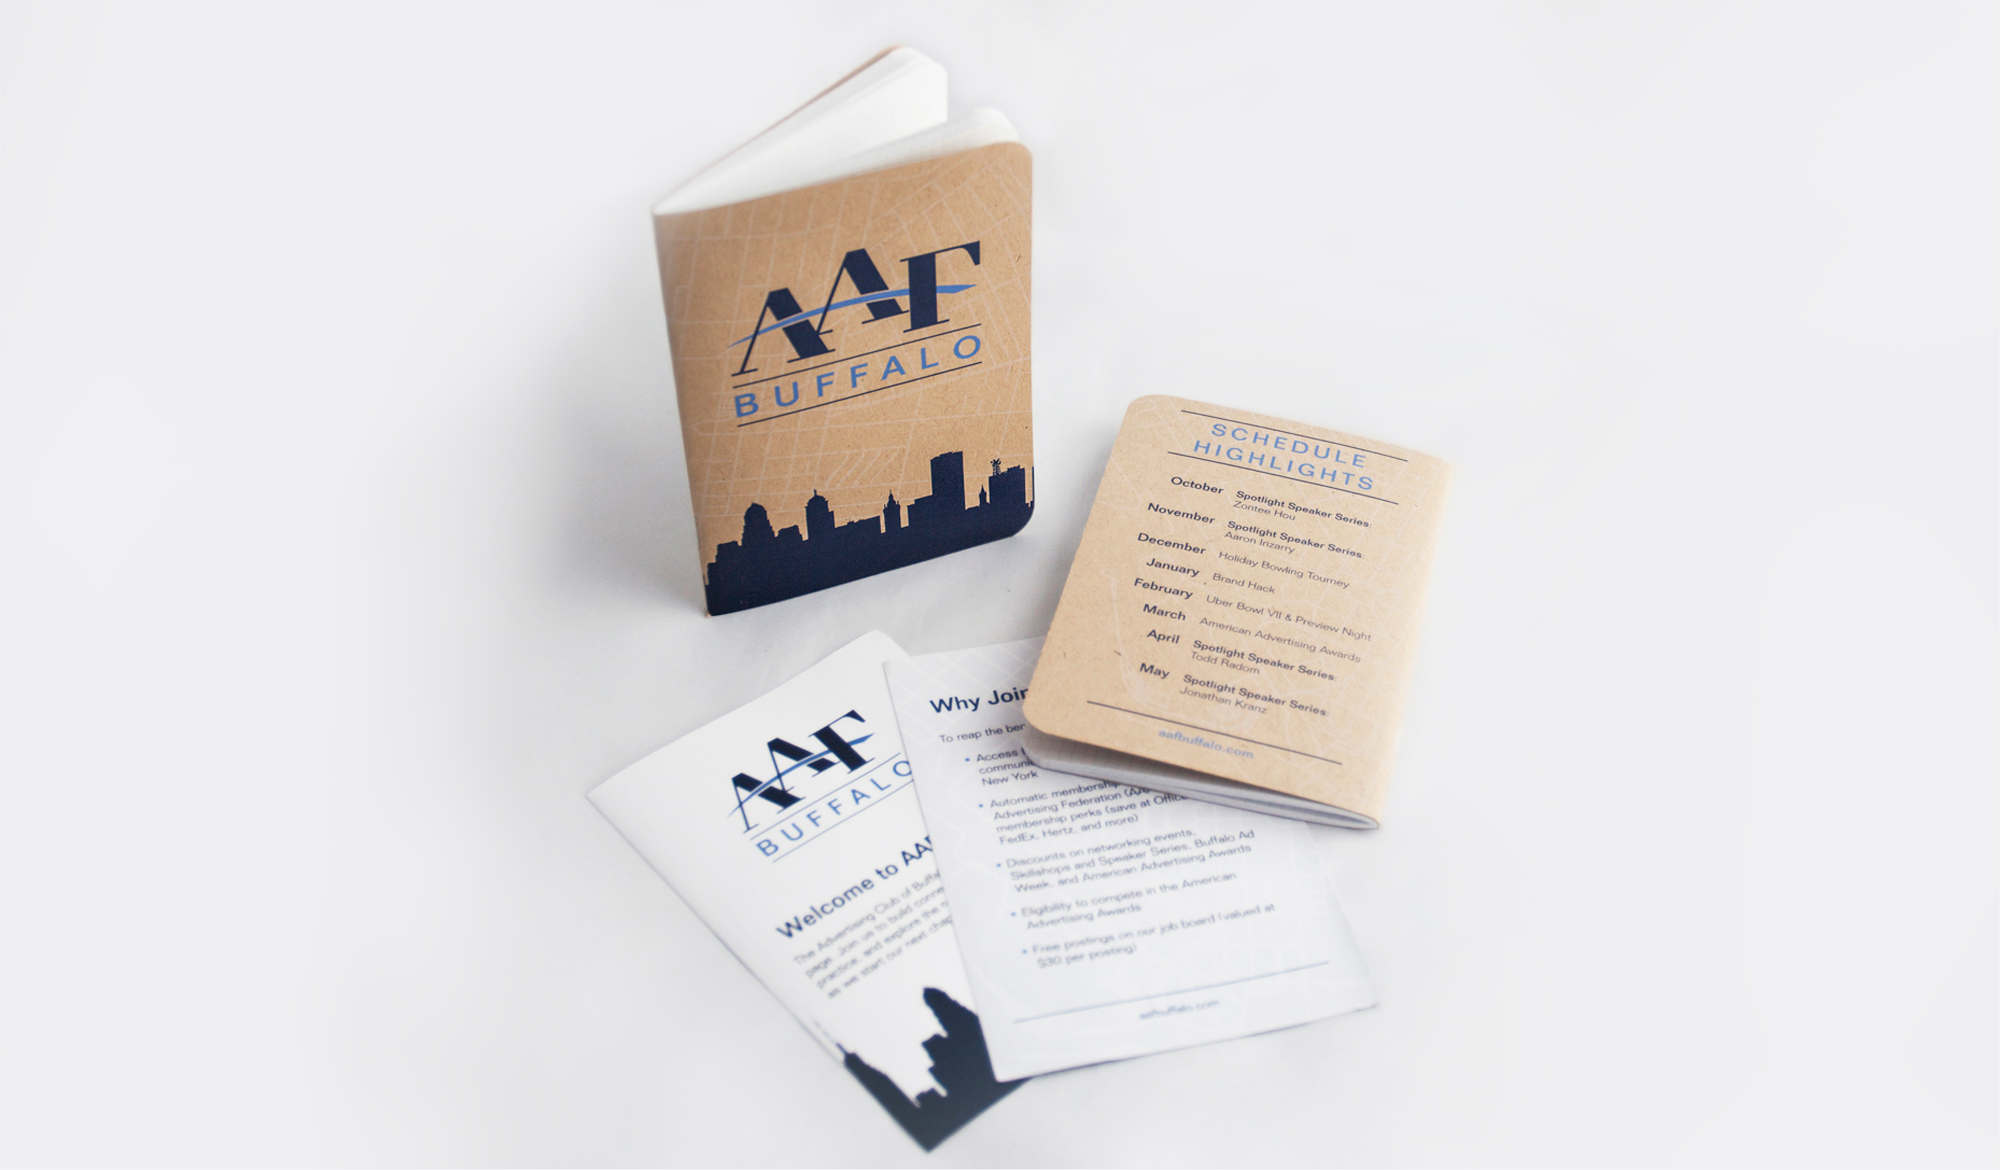 AAF Buffalo Notebook and Insert